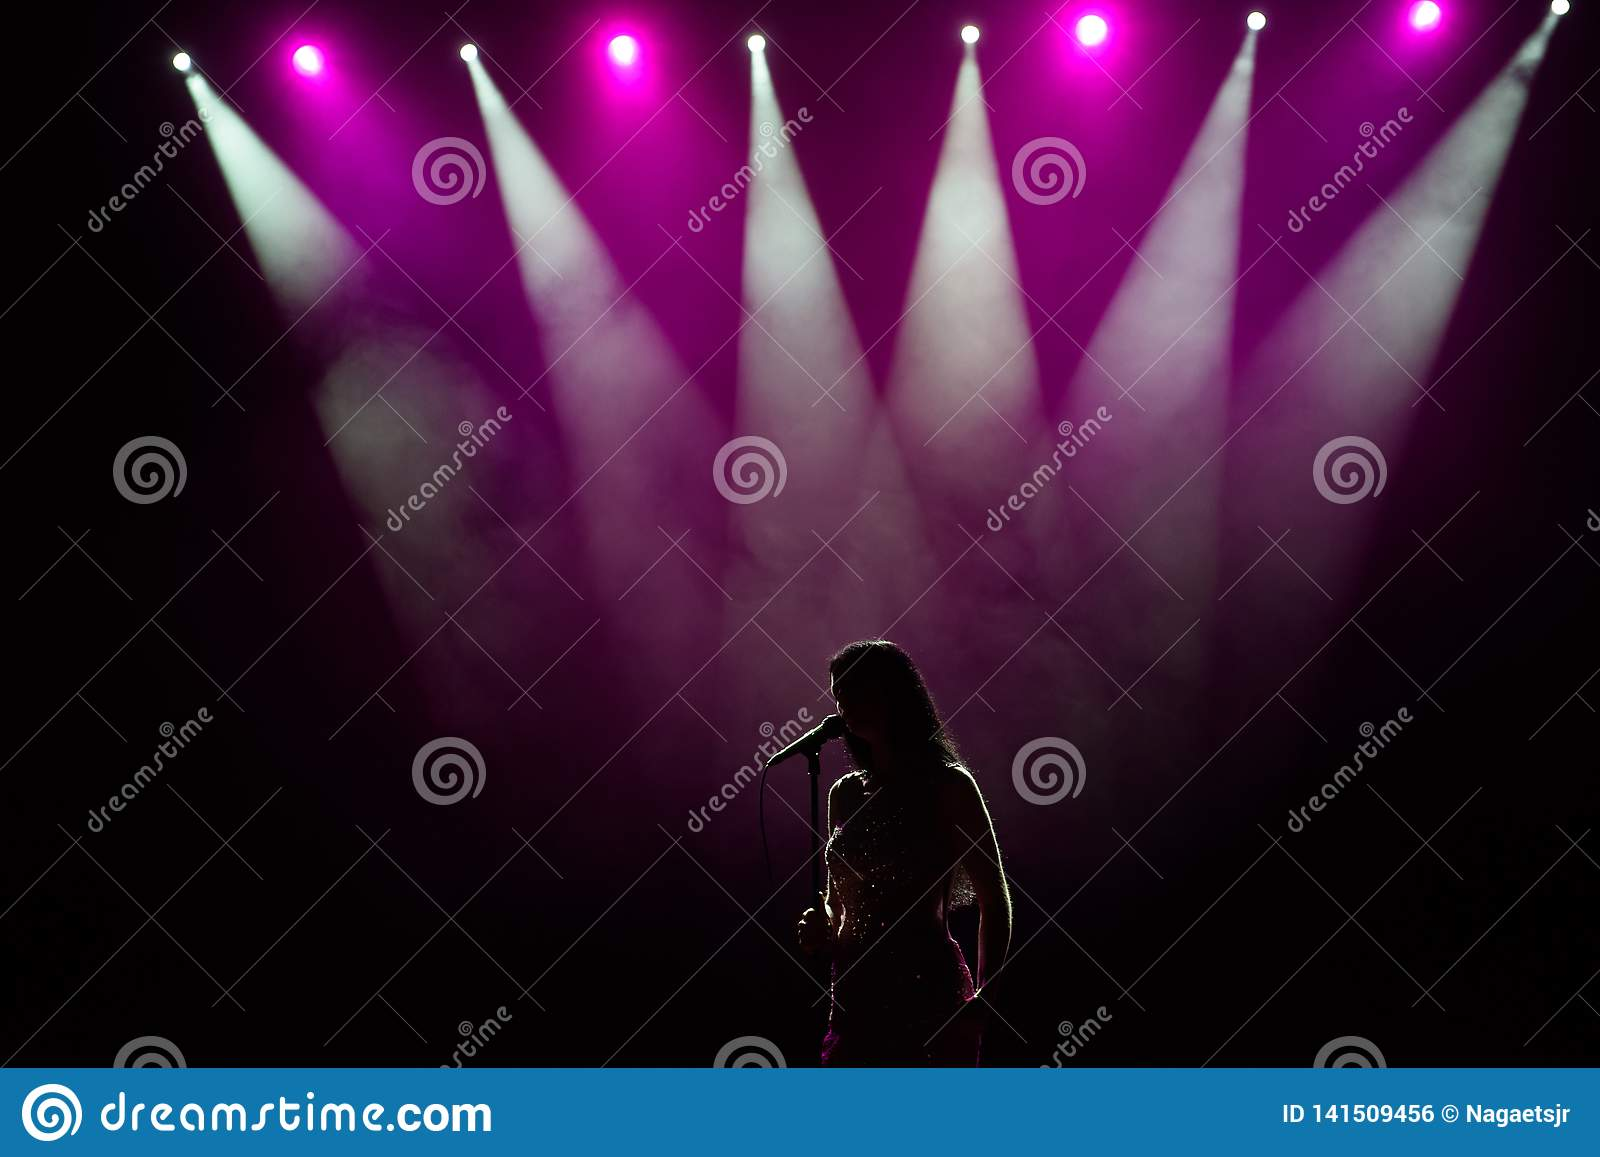 Girl in long gown performing on stage. Girl singing on the stage in front of the lights. Silhouette of singer standing